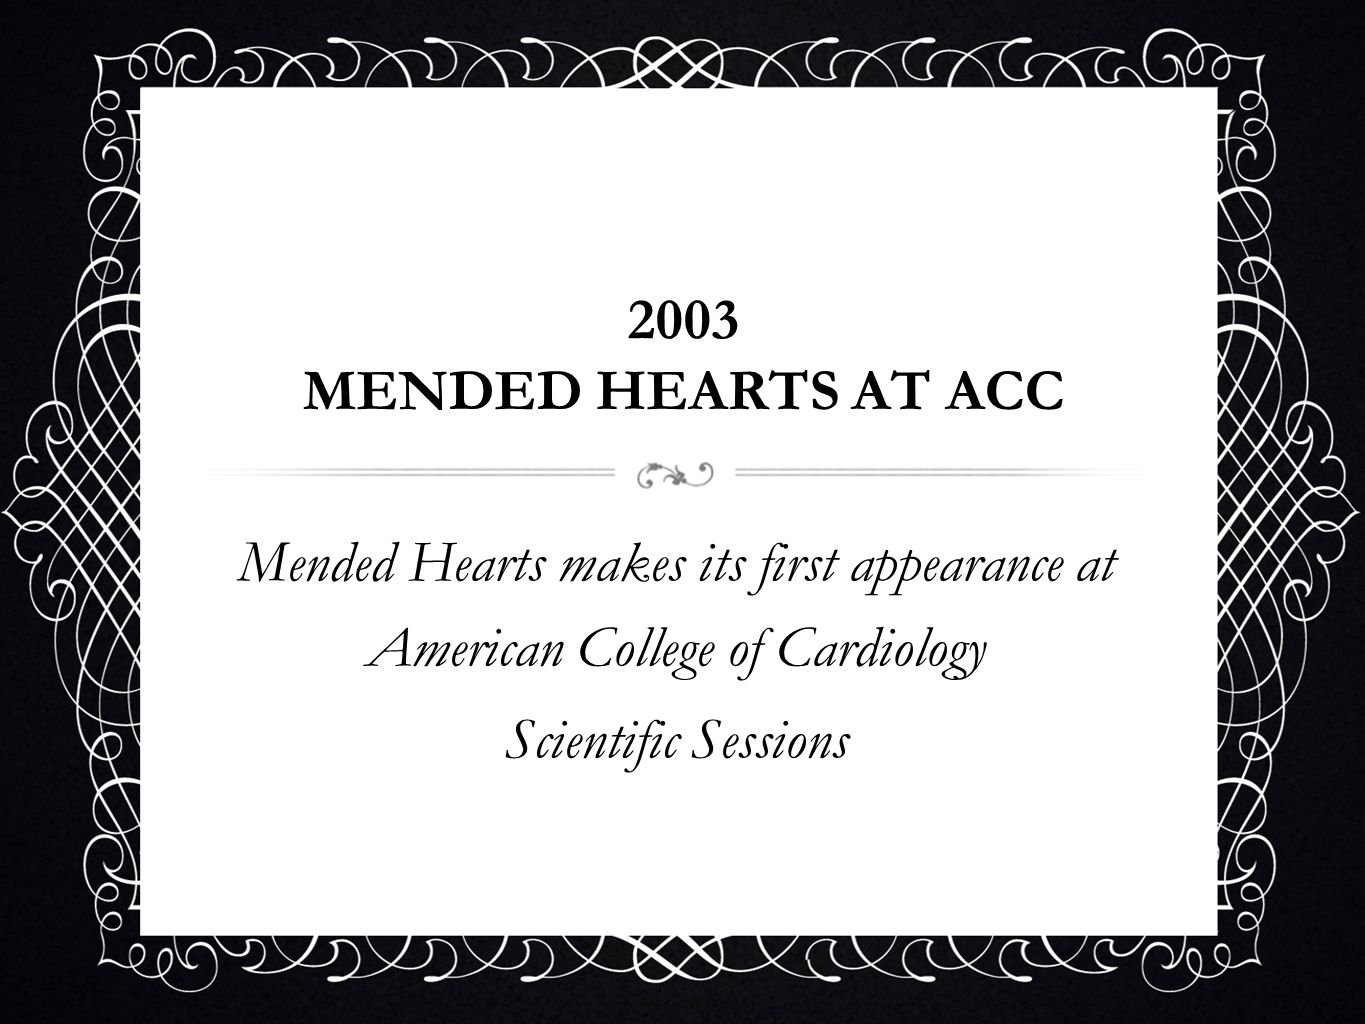 2003 MENDED HEARTS AT ACC Mended Hearts makes its first appearance at American College of Cardiology.